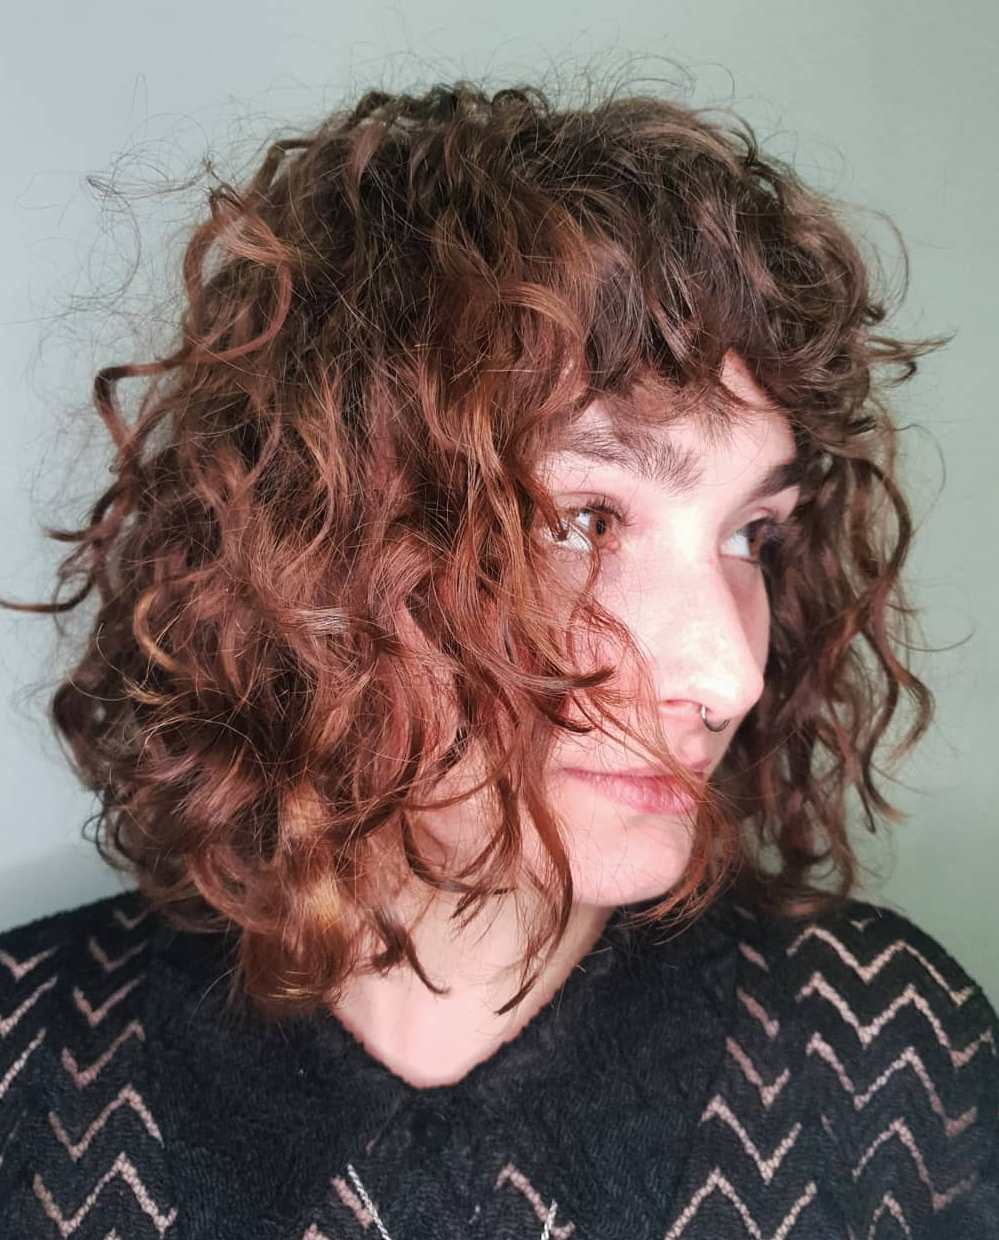 How to Get a Modern Perm Hairstyle for Stylish Waves or Curls? in